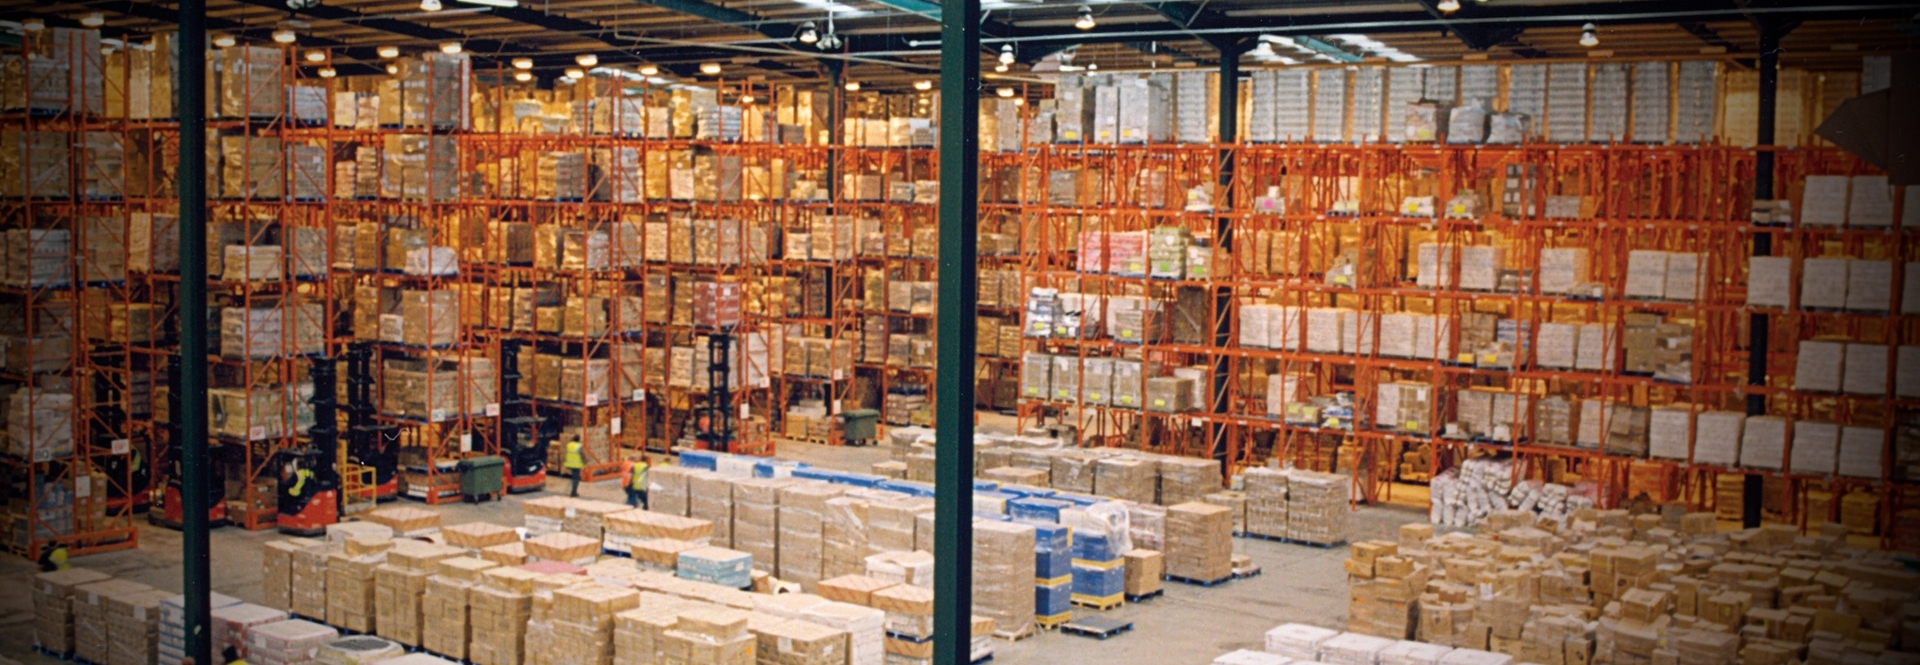 Warehouse Wholesale Supplier for Amazon FBA